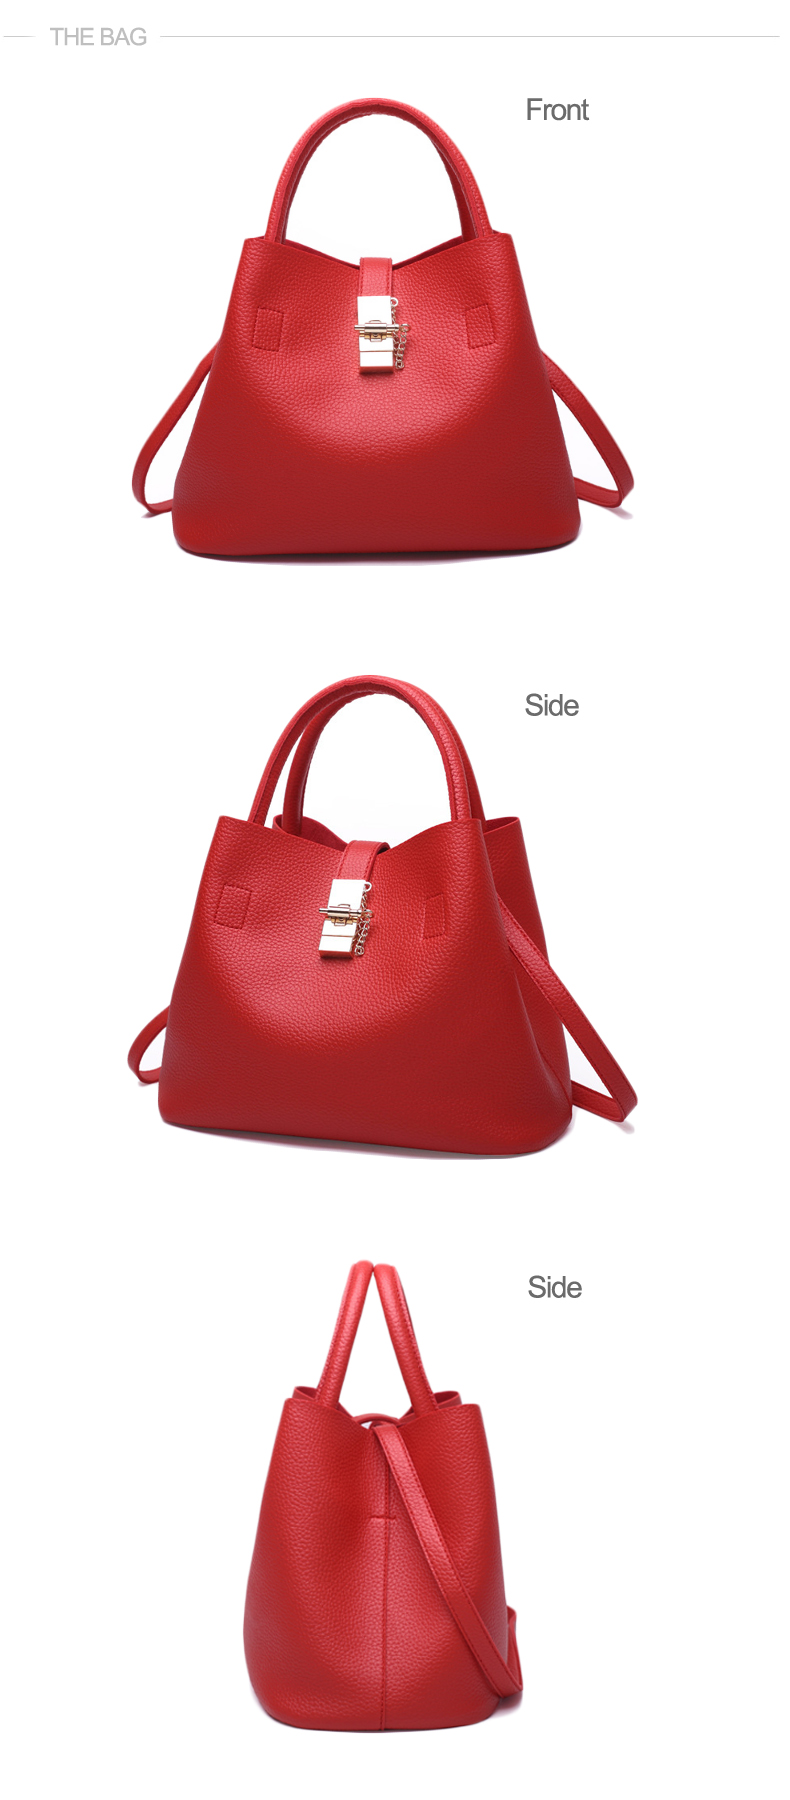 Explosion promotion in 2019, low price one day snapped up, Handbags, Fashion  Shoulder Bags pink one size 11